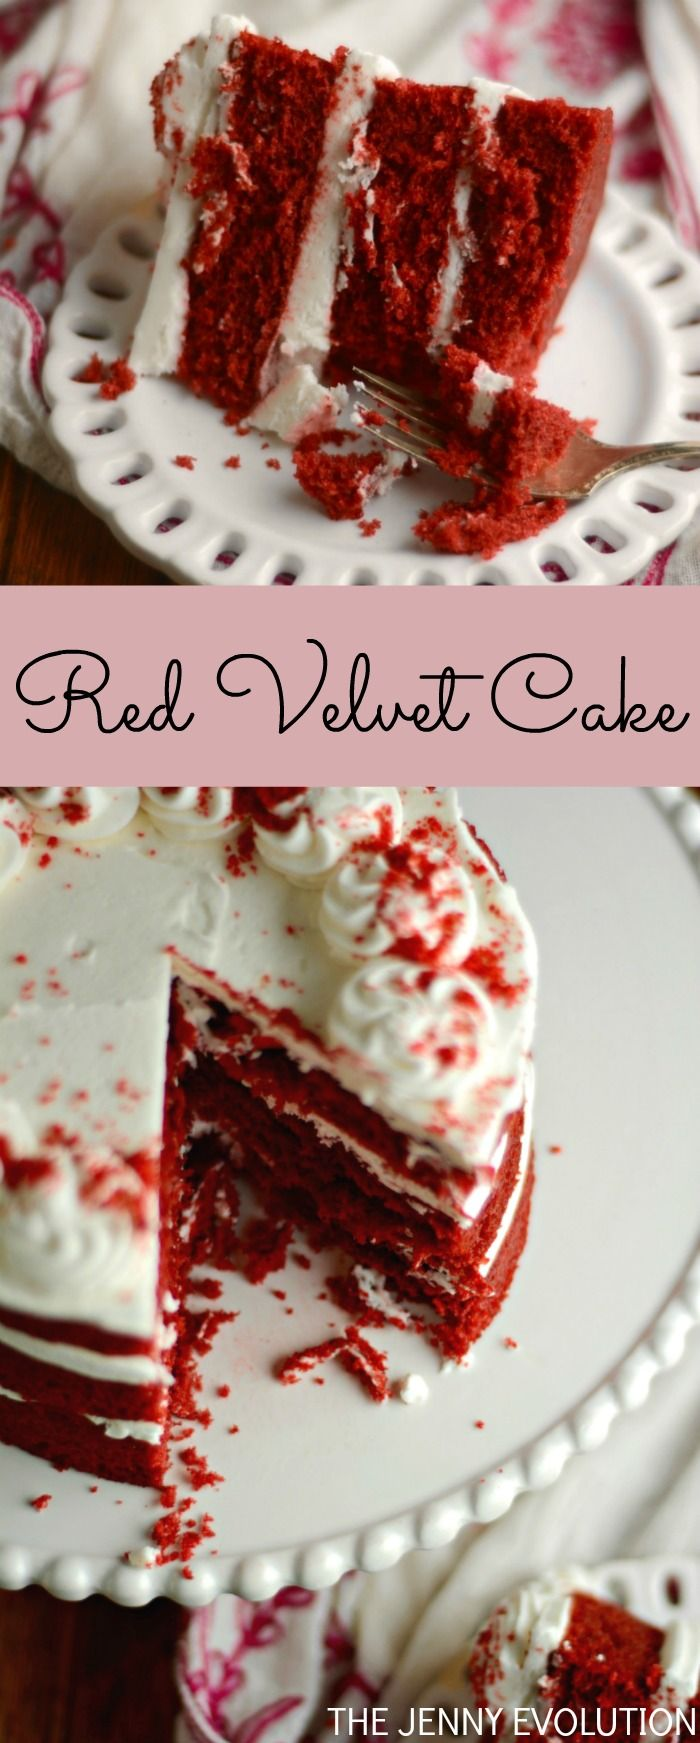 Best Red Velvet Cake Recipe. You're going to melt over the velvety smoothness of this cake and cream cheese frosting!!!